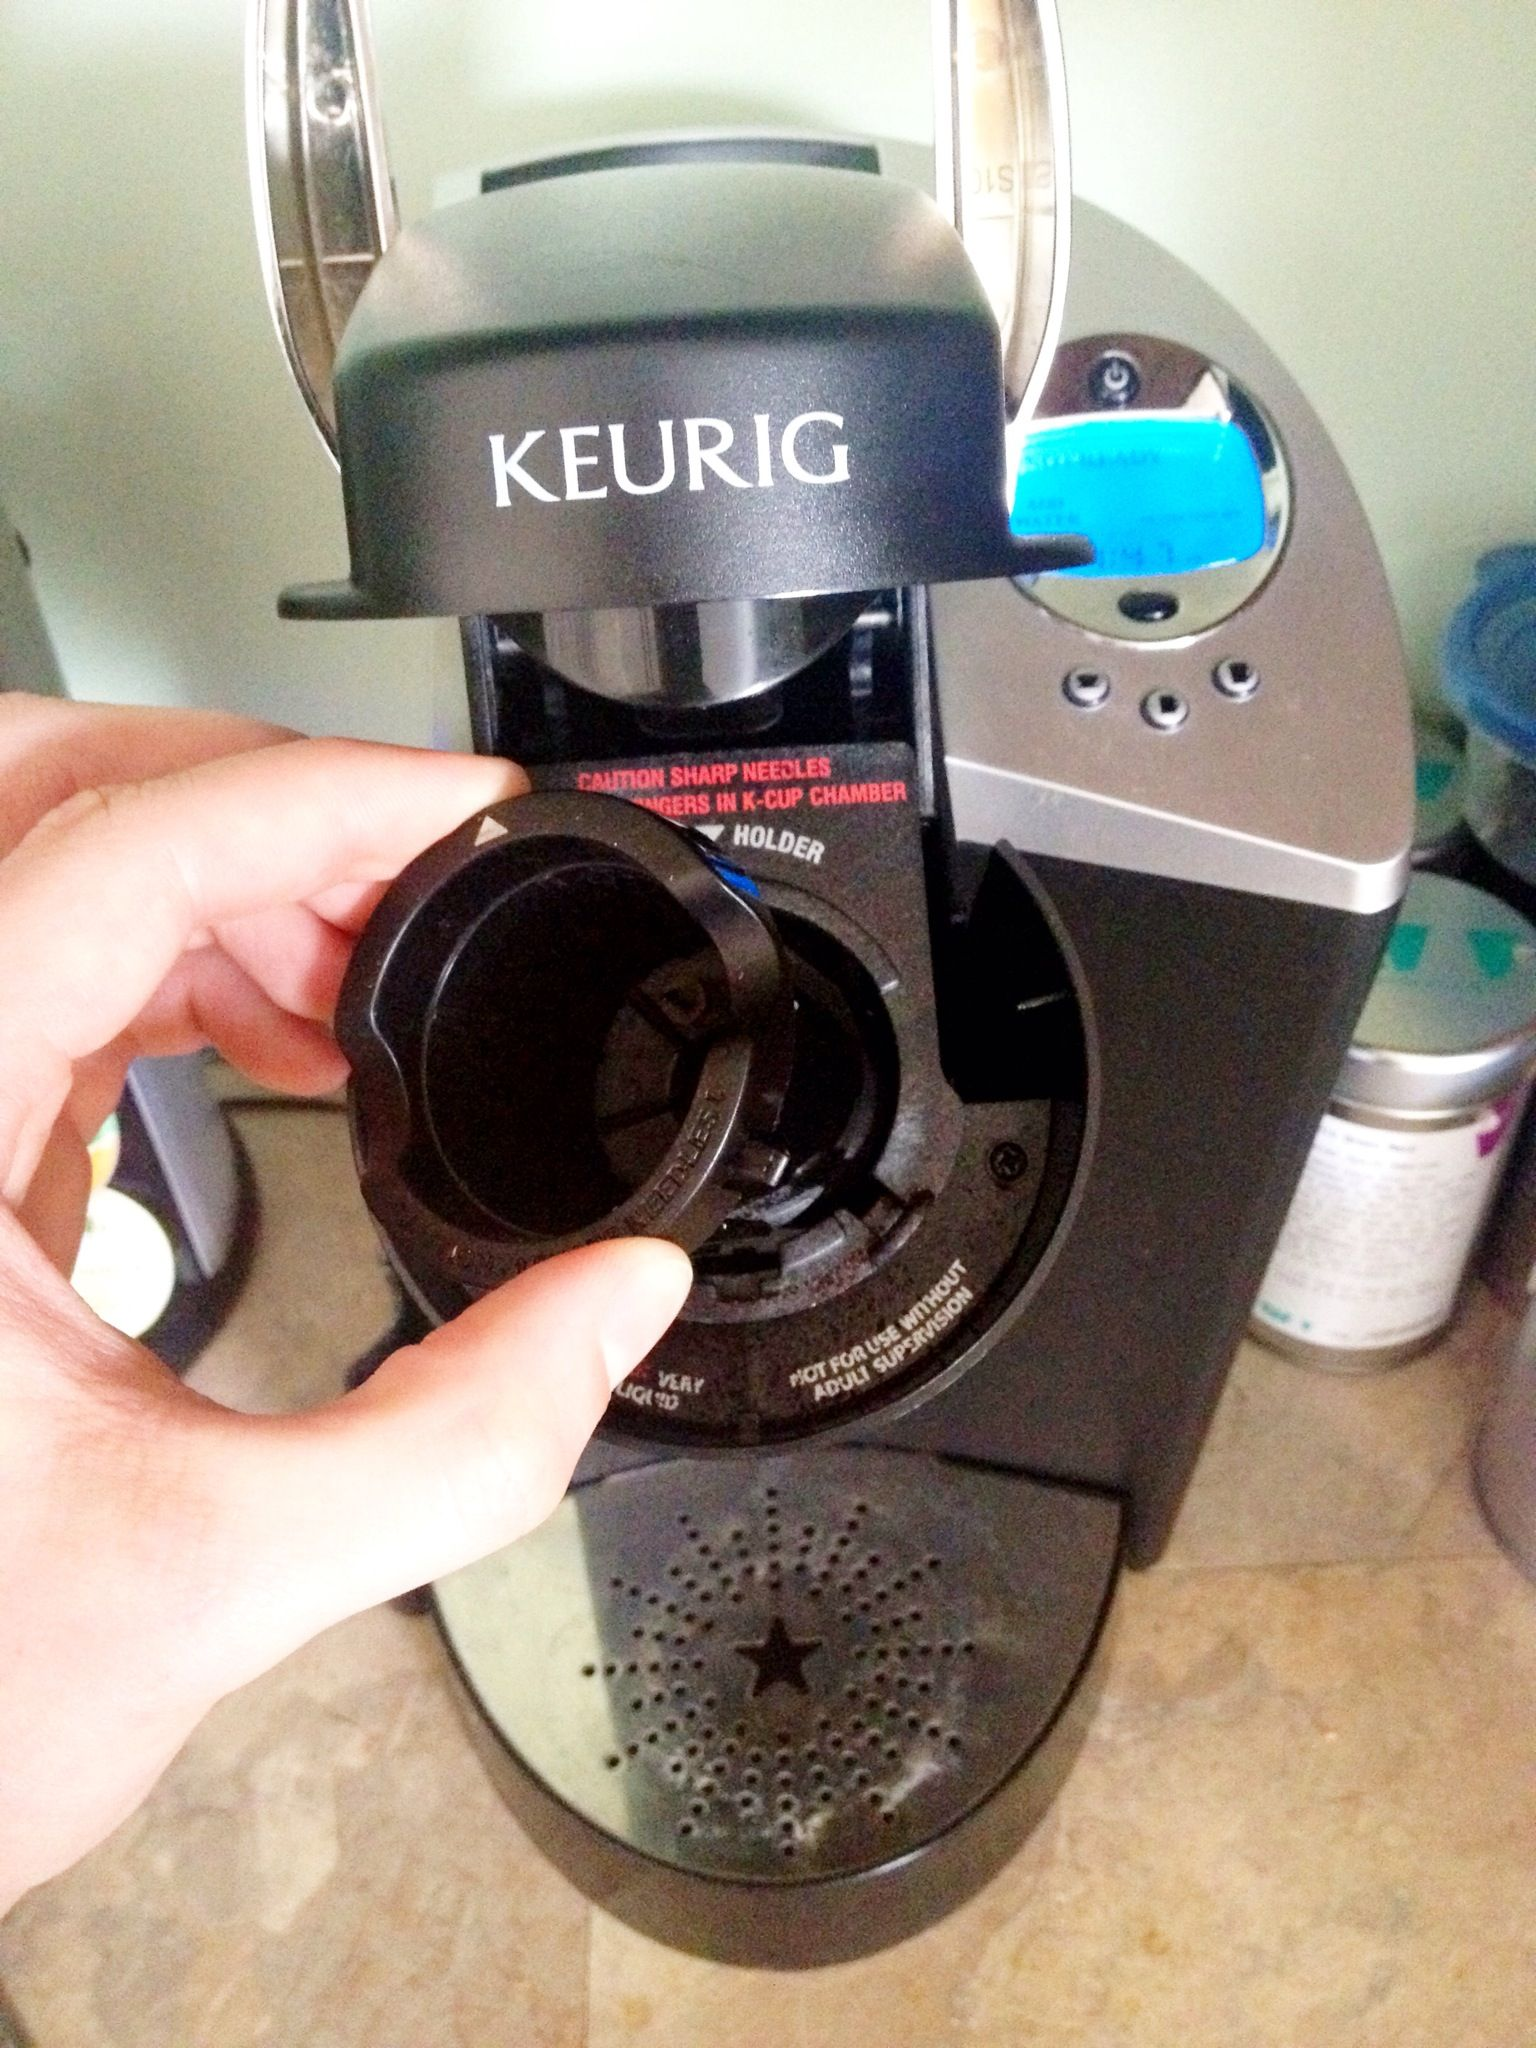 How to Descale & Clean Your Keurig Brewer Recipe